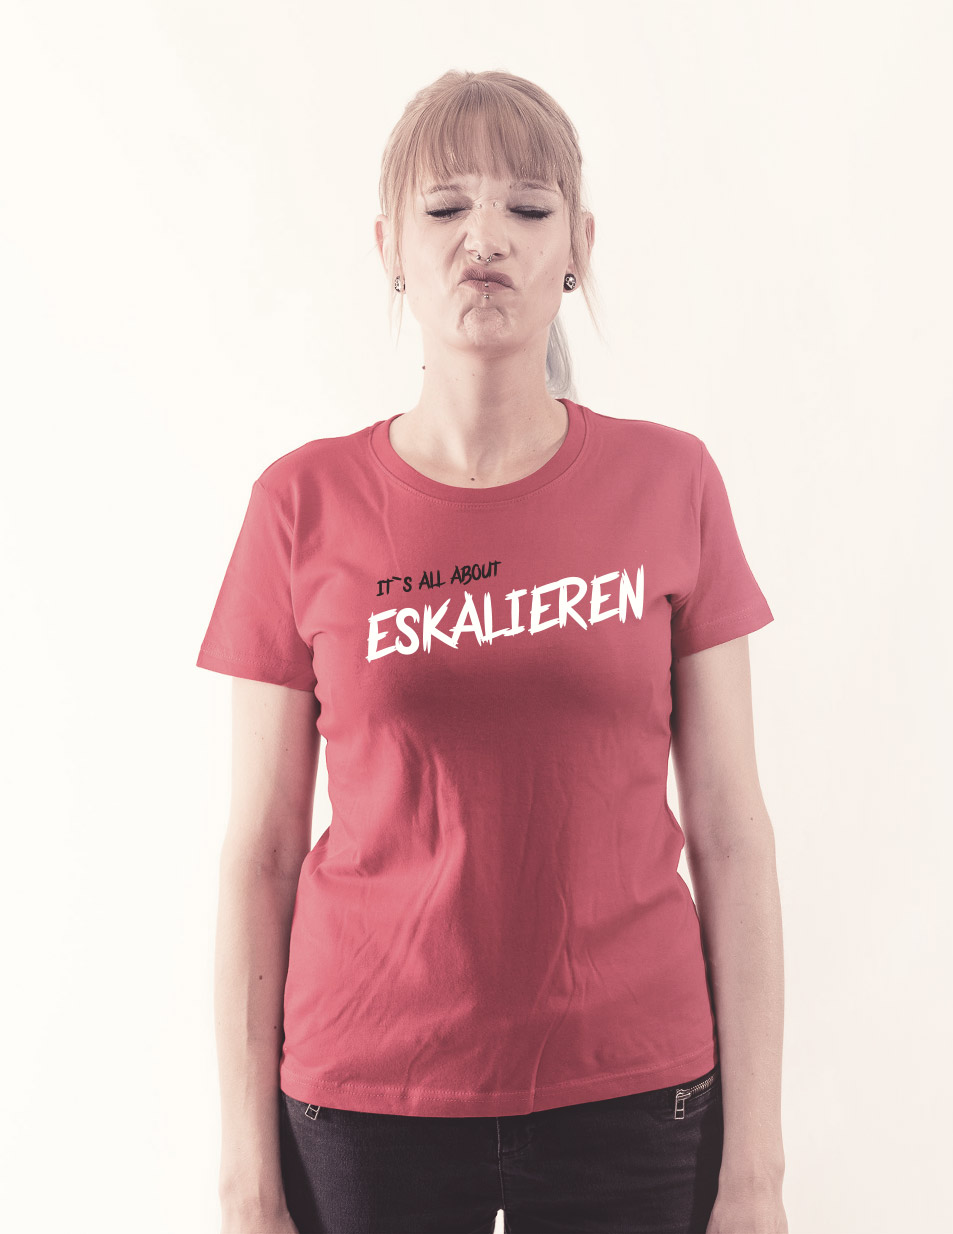 Its all about Eskalieren - Girly Shirt Pink Edition mehrfarbig auf pink